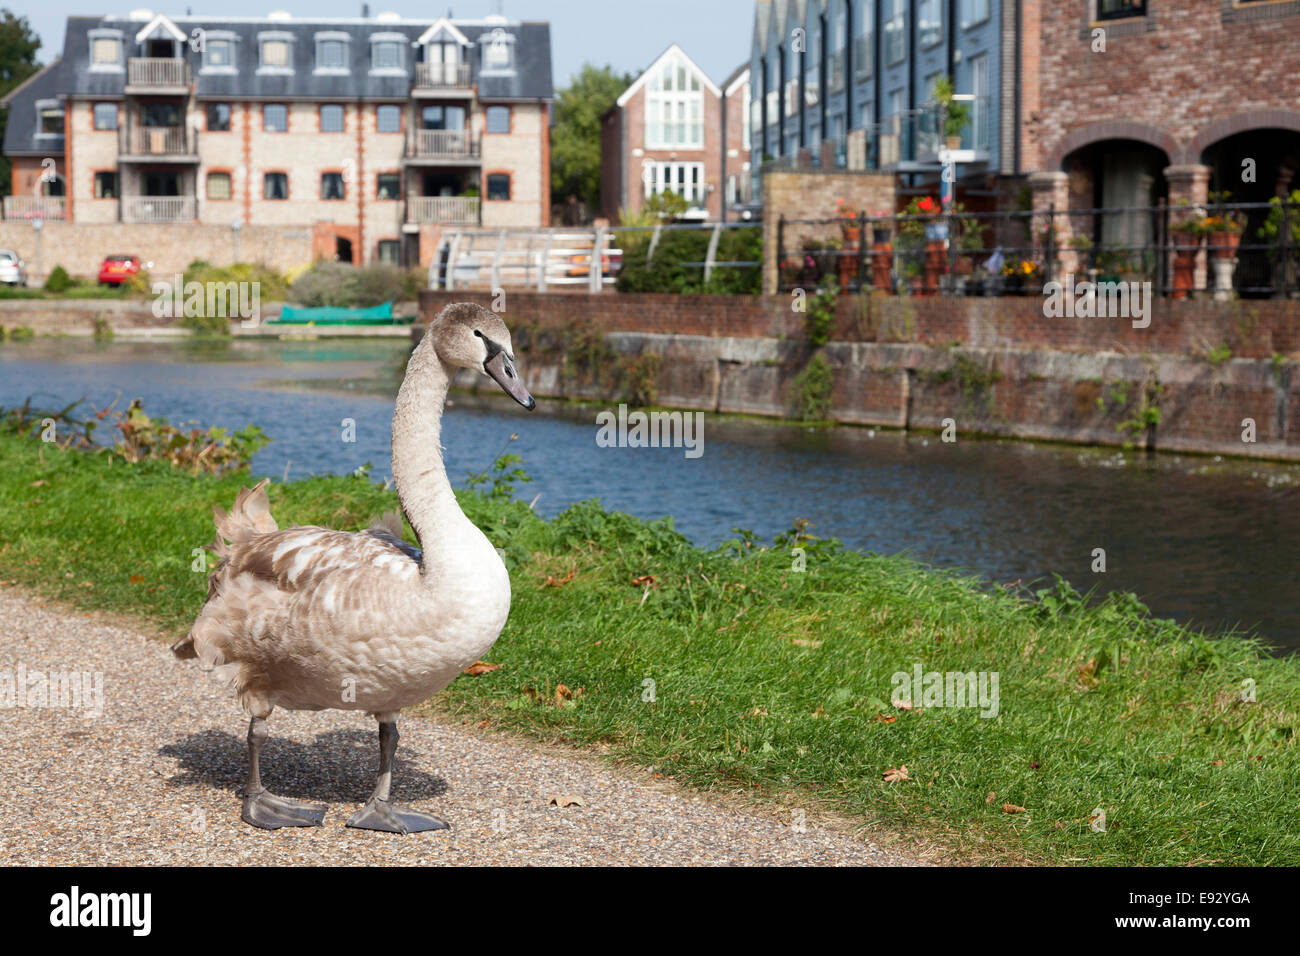 Cygnets Sussex Stock Photos & Cygnets Sussex Stock Images